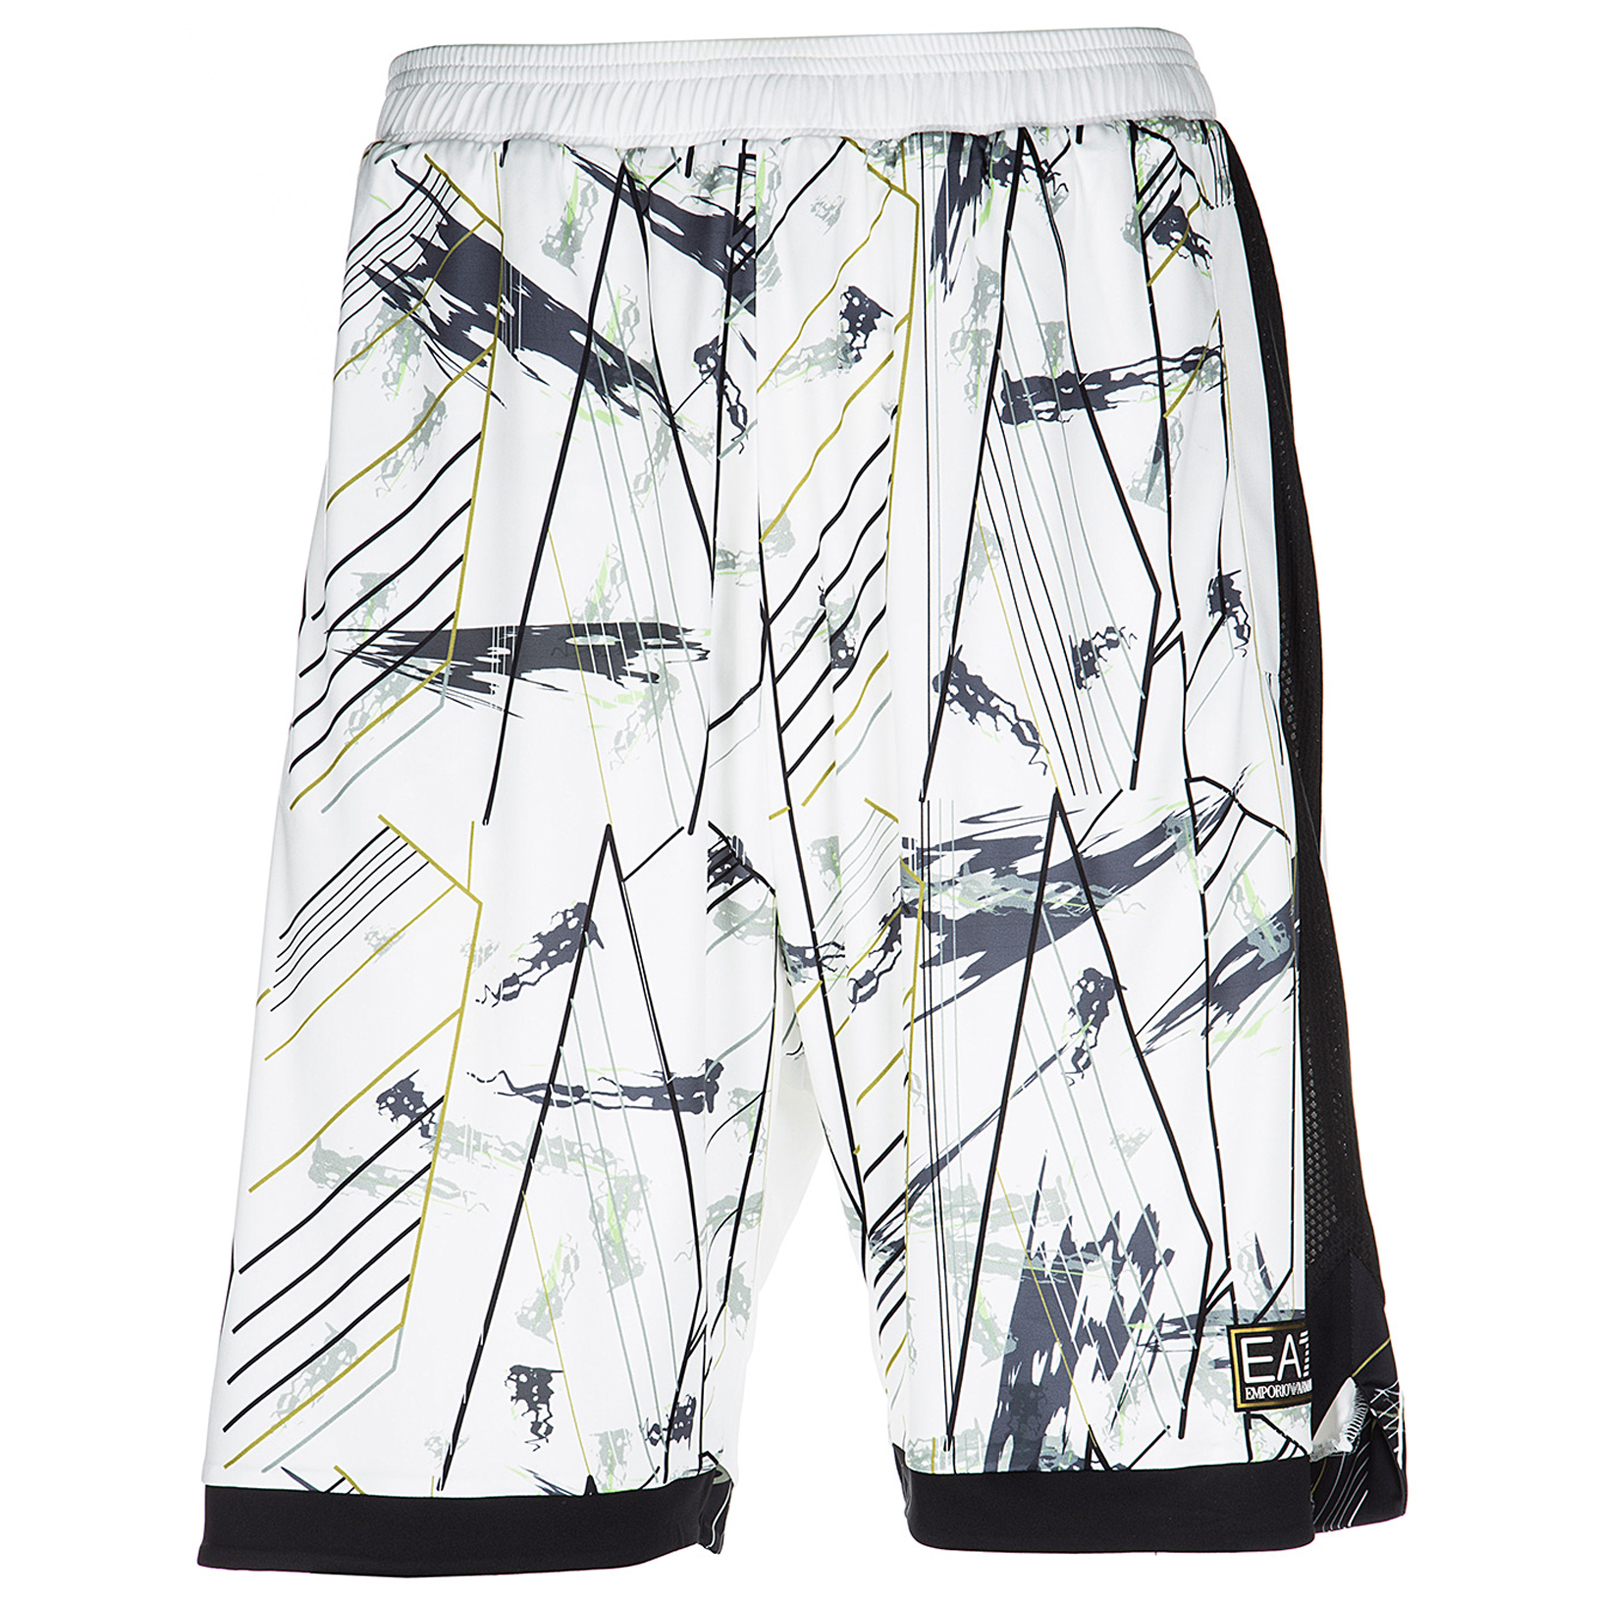 Men's shorts kurz bermuda